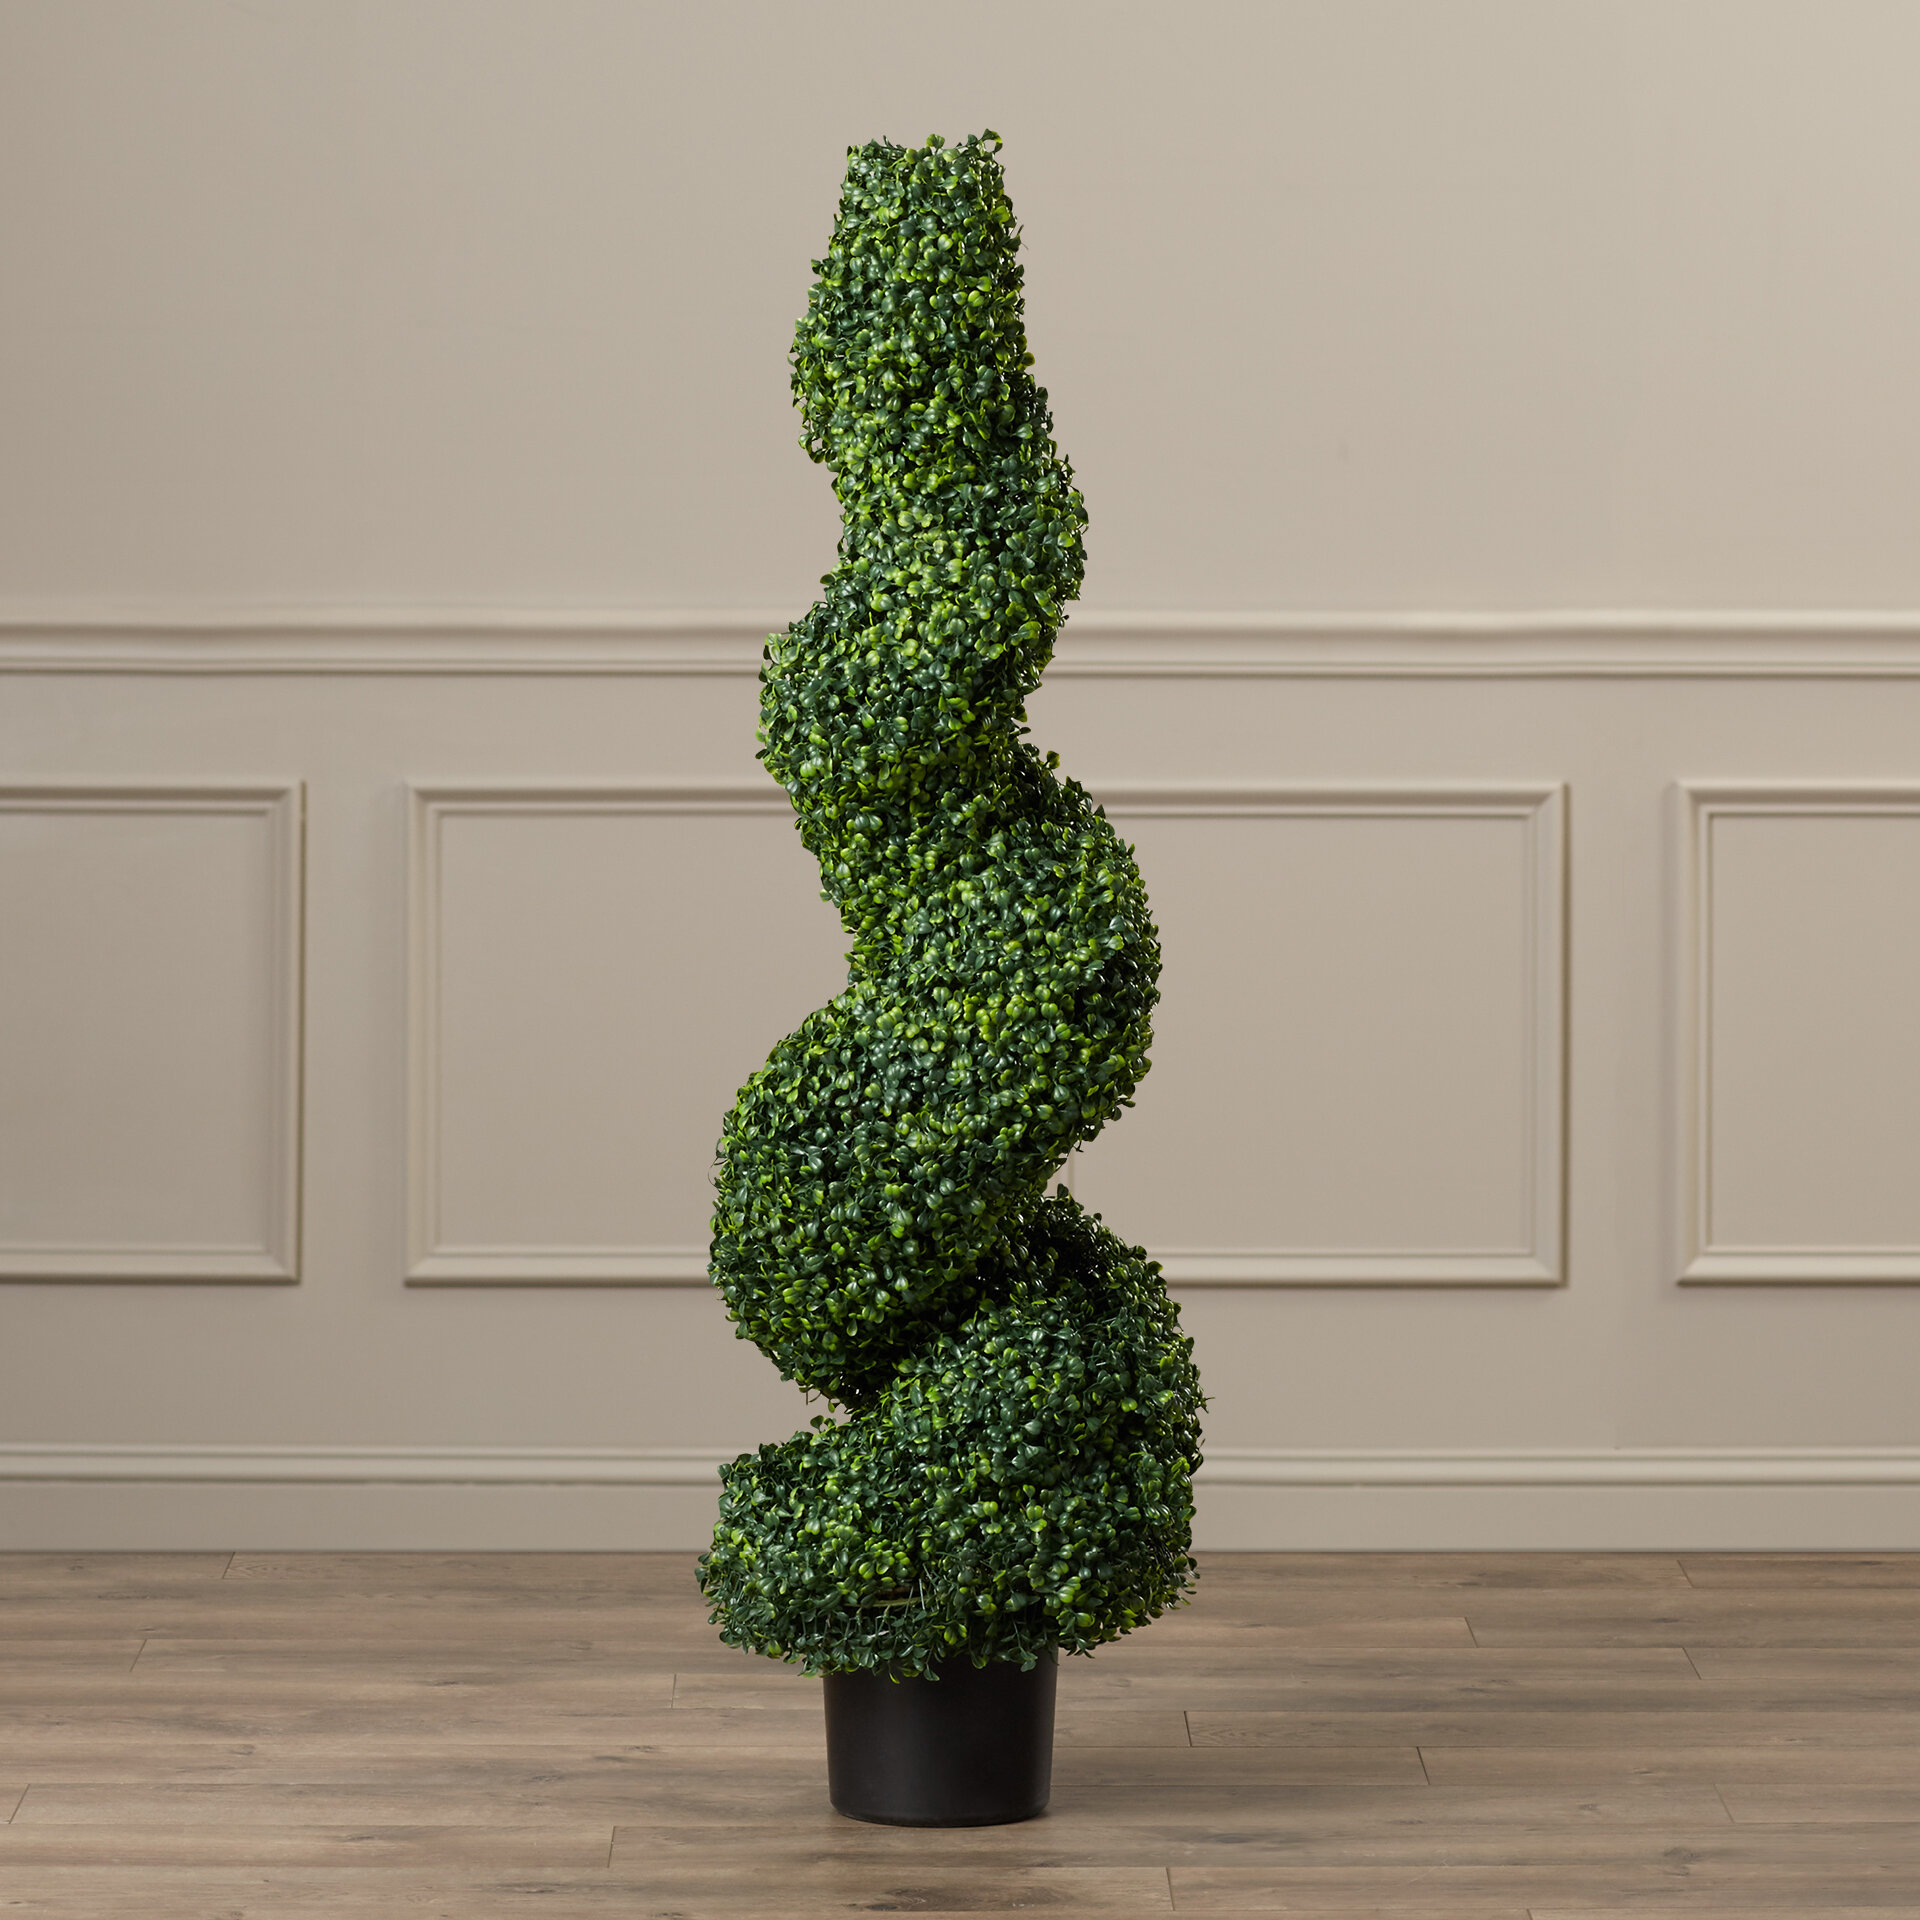 Darby Home Co Boxwood Topiary In Pot Reviews Wayfair